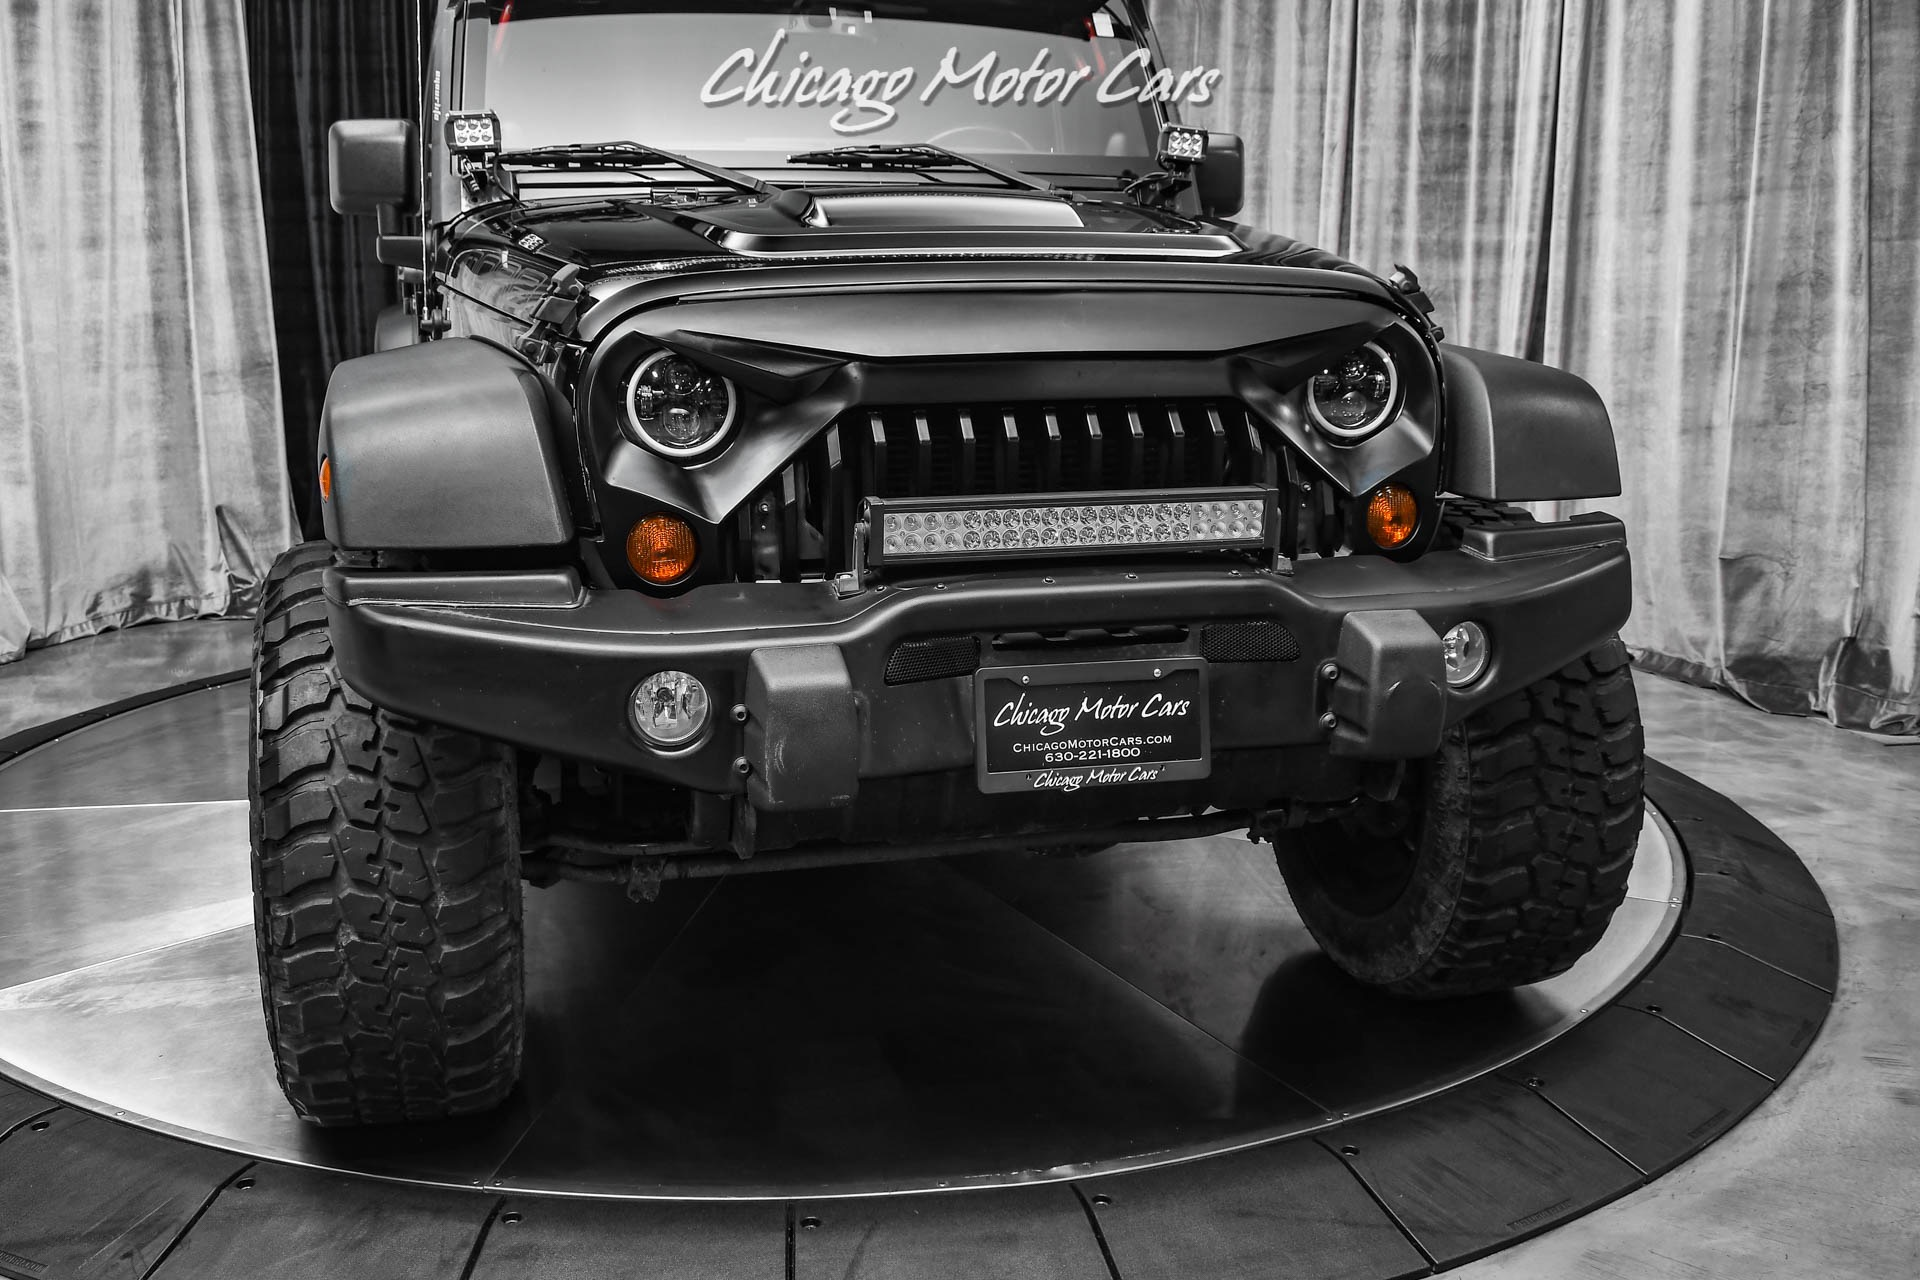 Used-2013-Jeep-Wrangler-Unlimited-Sahara-Moab-4-inch-Lift-35in-Tires-Hardtop--Bestop-Soft-top-Leather